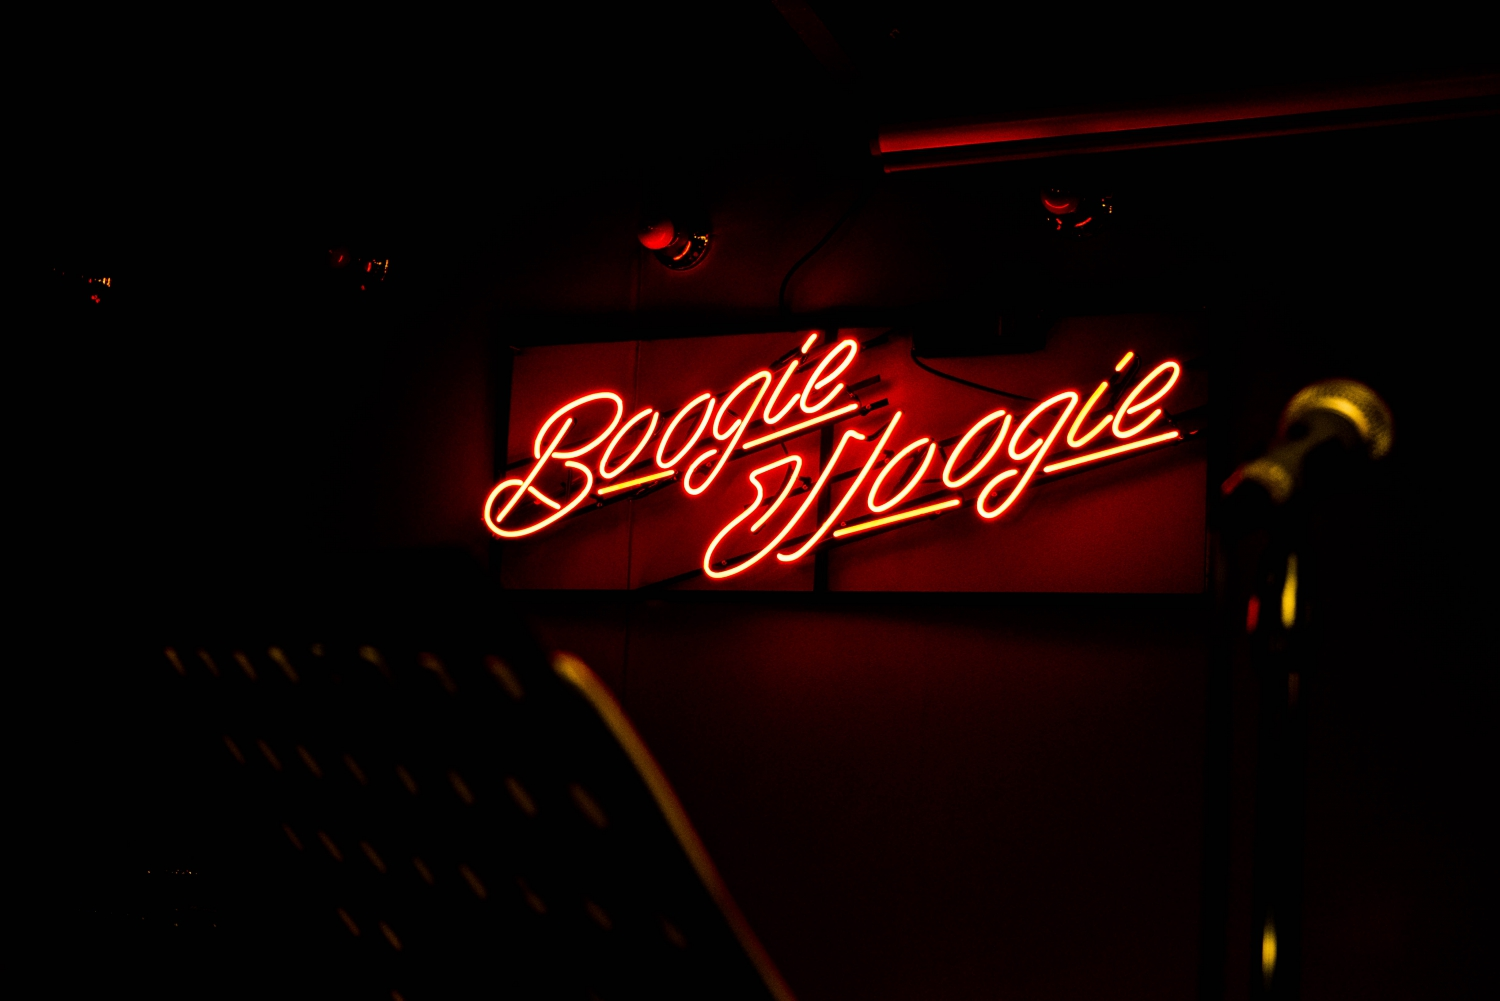 Valentine's Special at Boogie Woogie